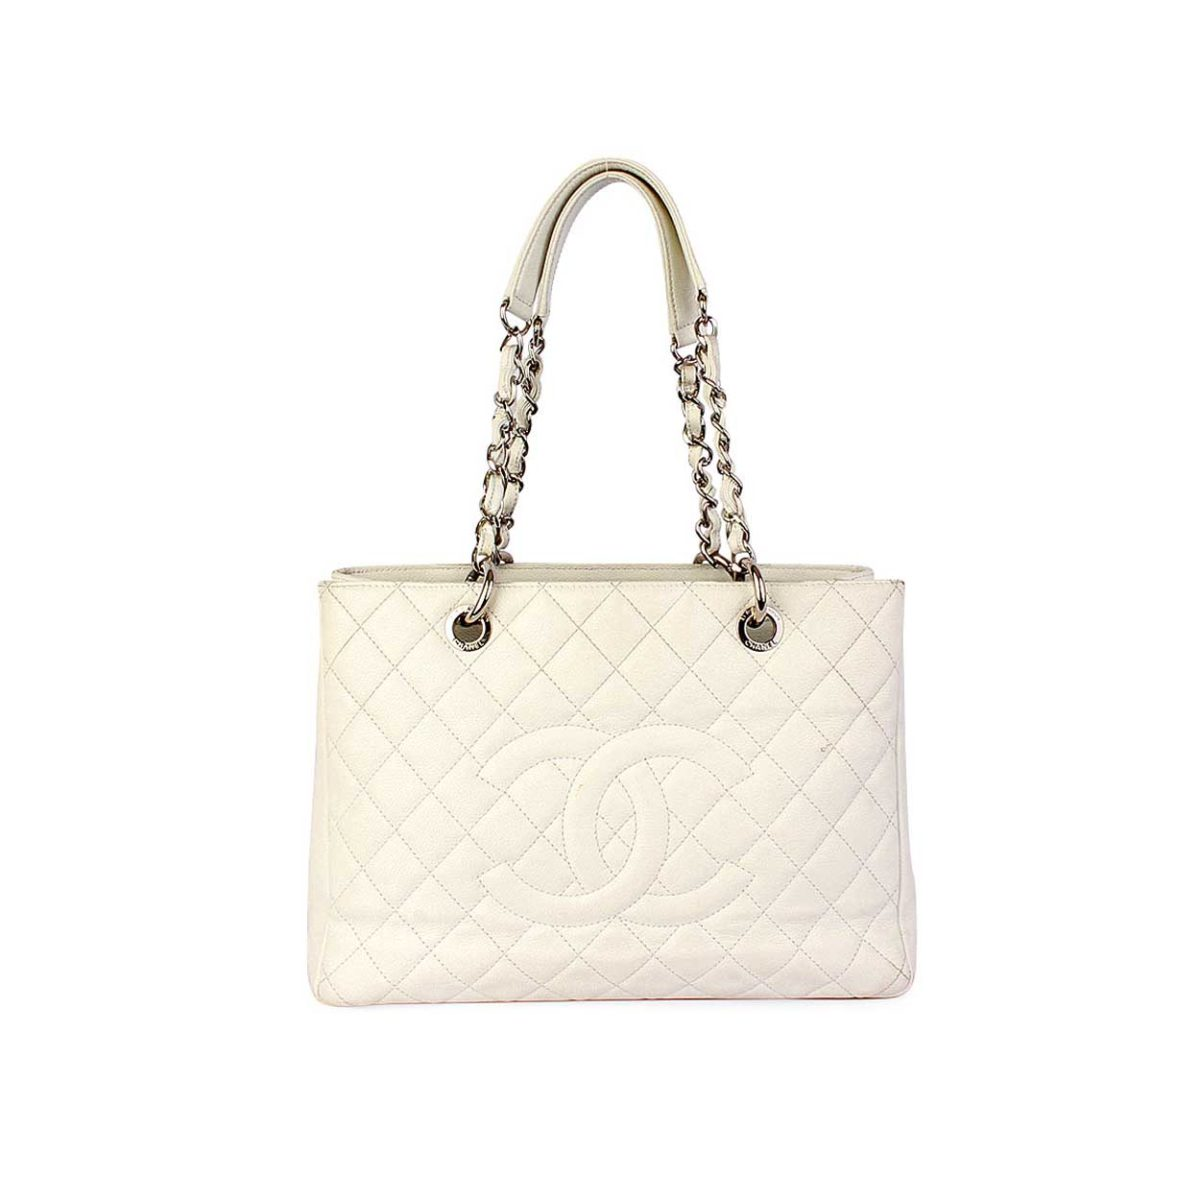 calfskin angle luxity pocket handbags quilt camera chanel category front leather purses small products quilted accessories bag vintage